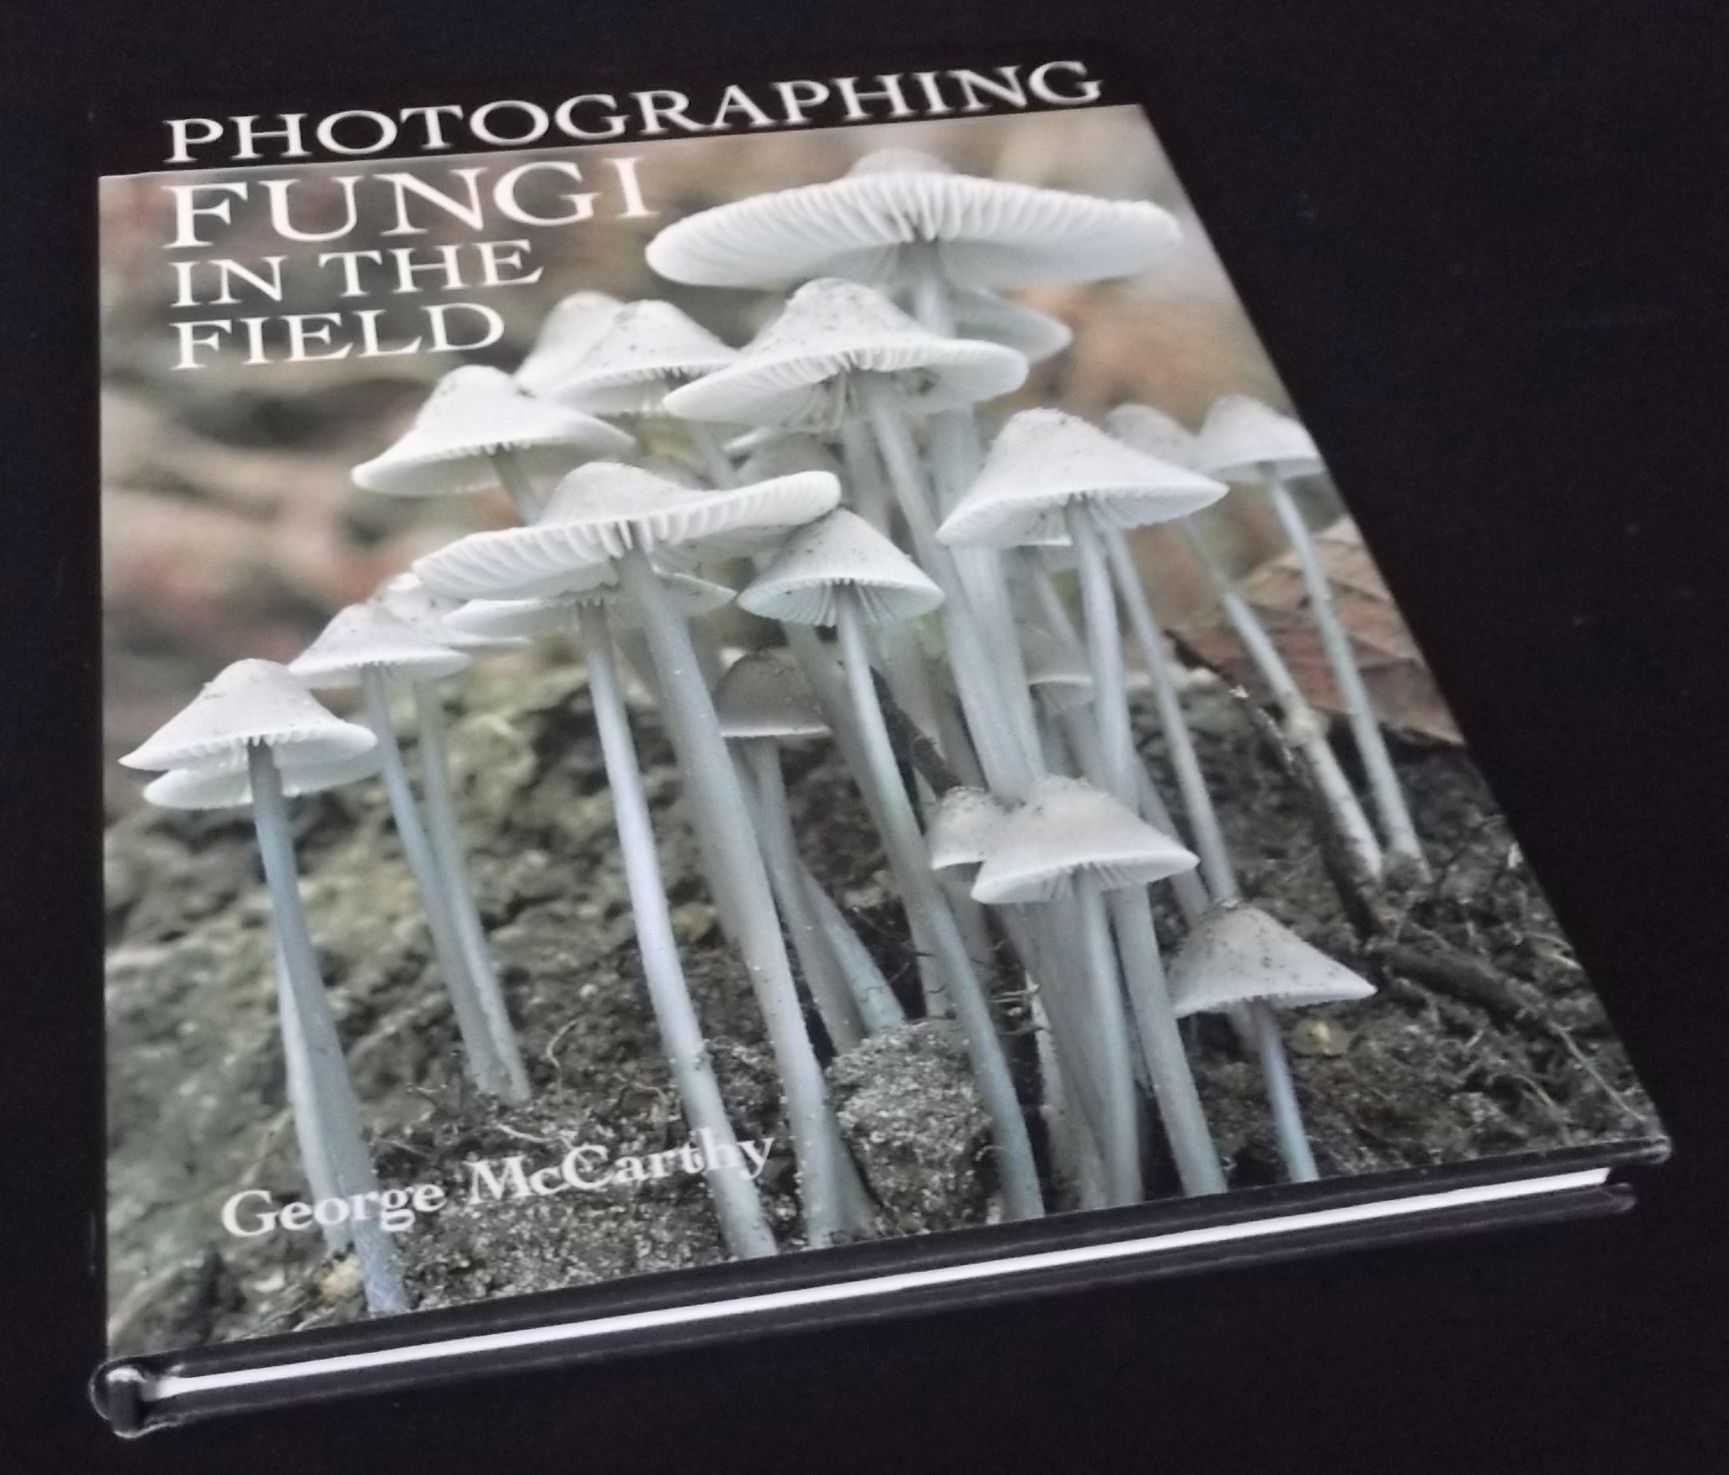 GEORGE MCCARTHY - Photographing Fungi in the Field